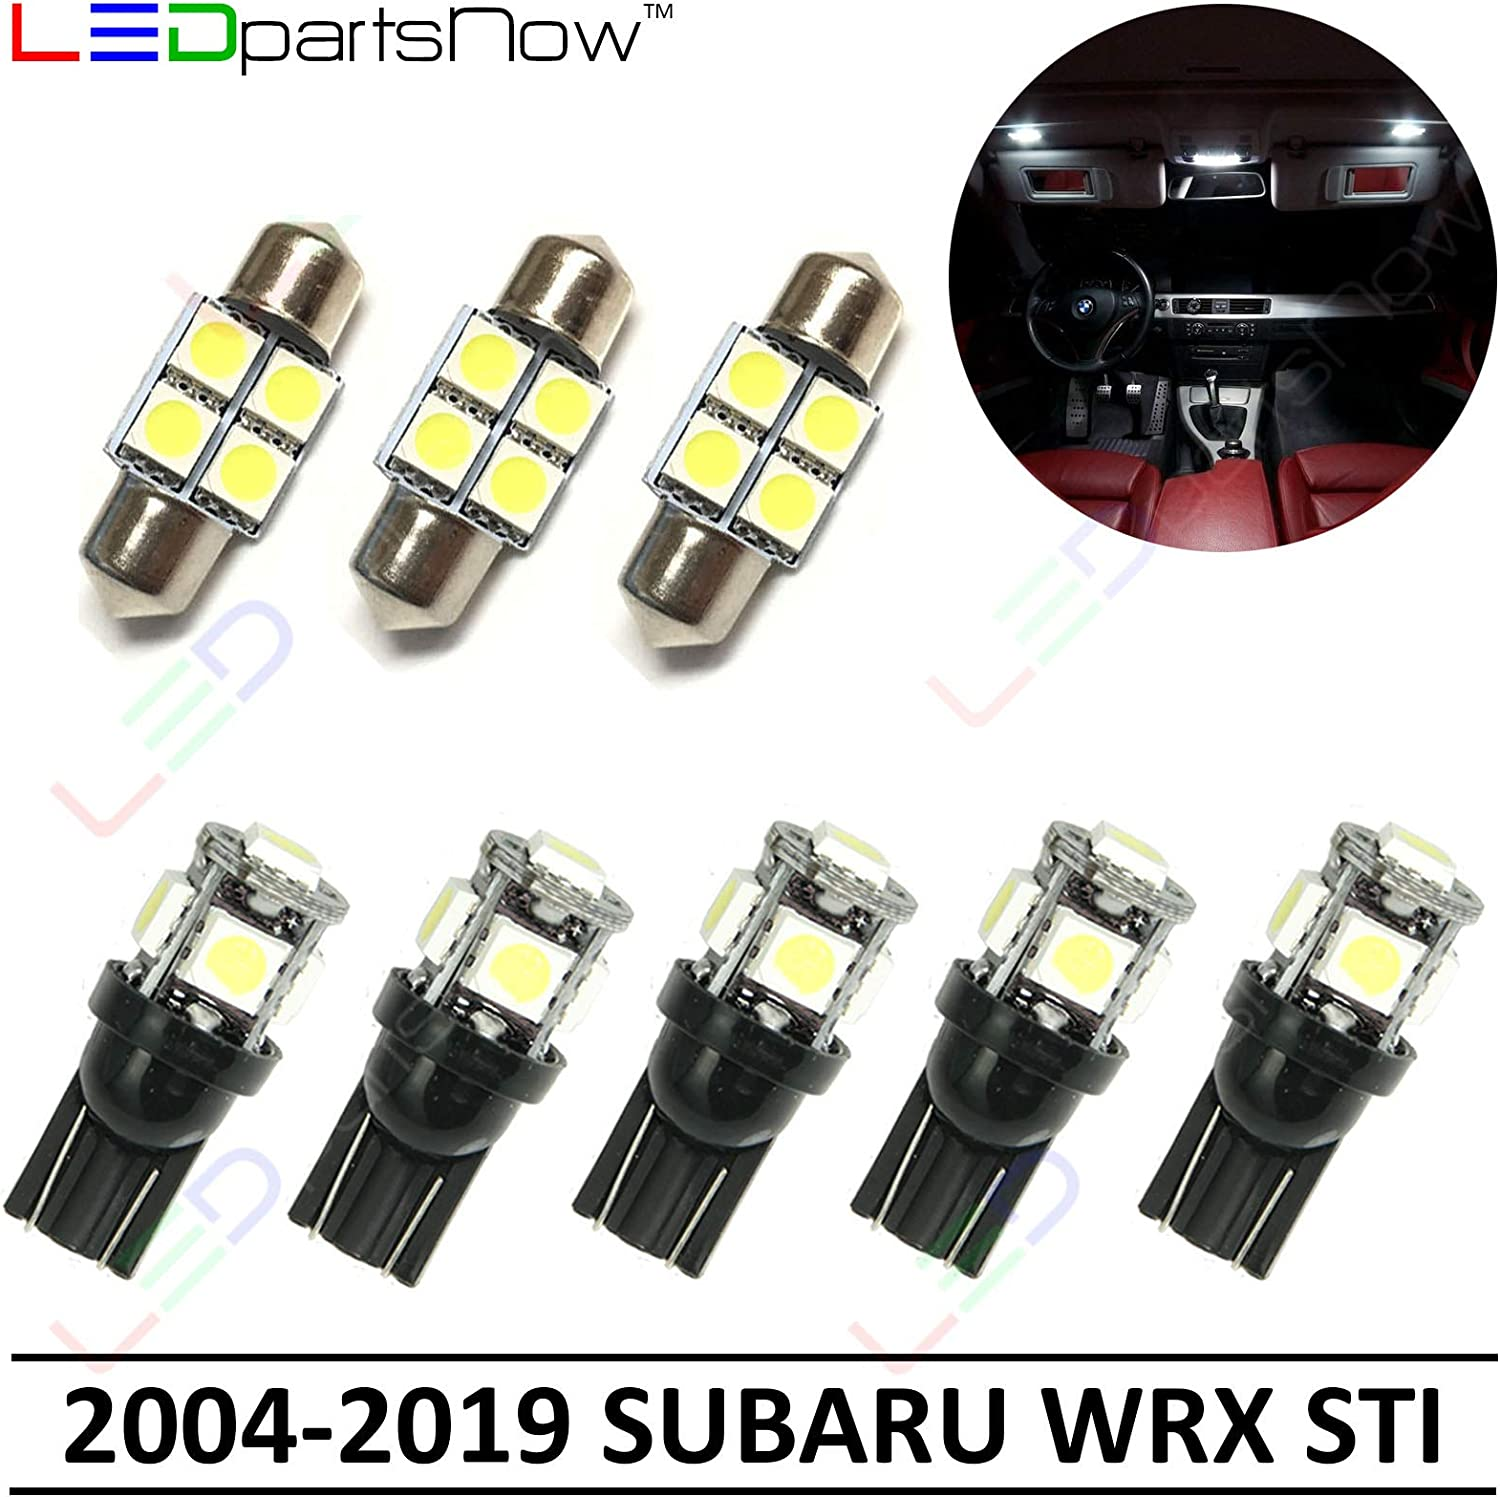 amazon com ledpartsnow interior led lights replacement for 2004 2019 subaru wrx sti accessories package kit 8 bulbs white automotive ledpartsnow interior led lights replacement for 2004 2019 subaru wrx sti accessories package kit 8 bulbs white